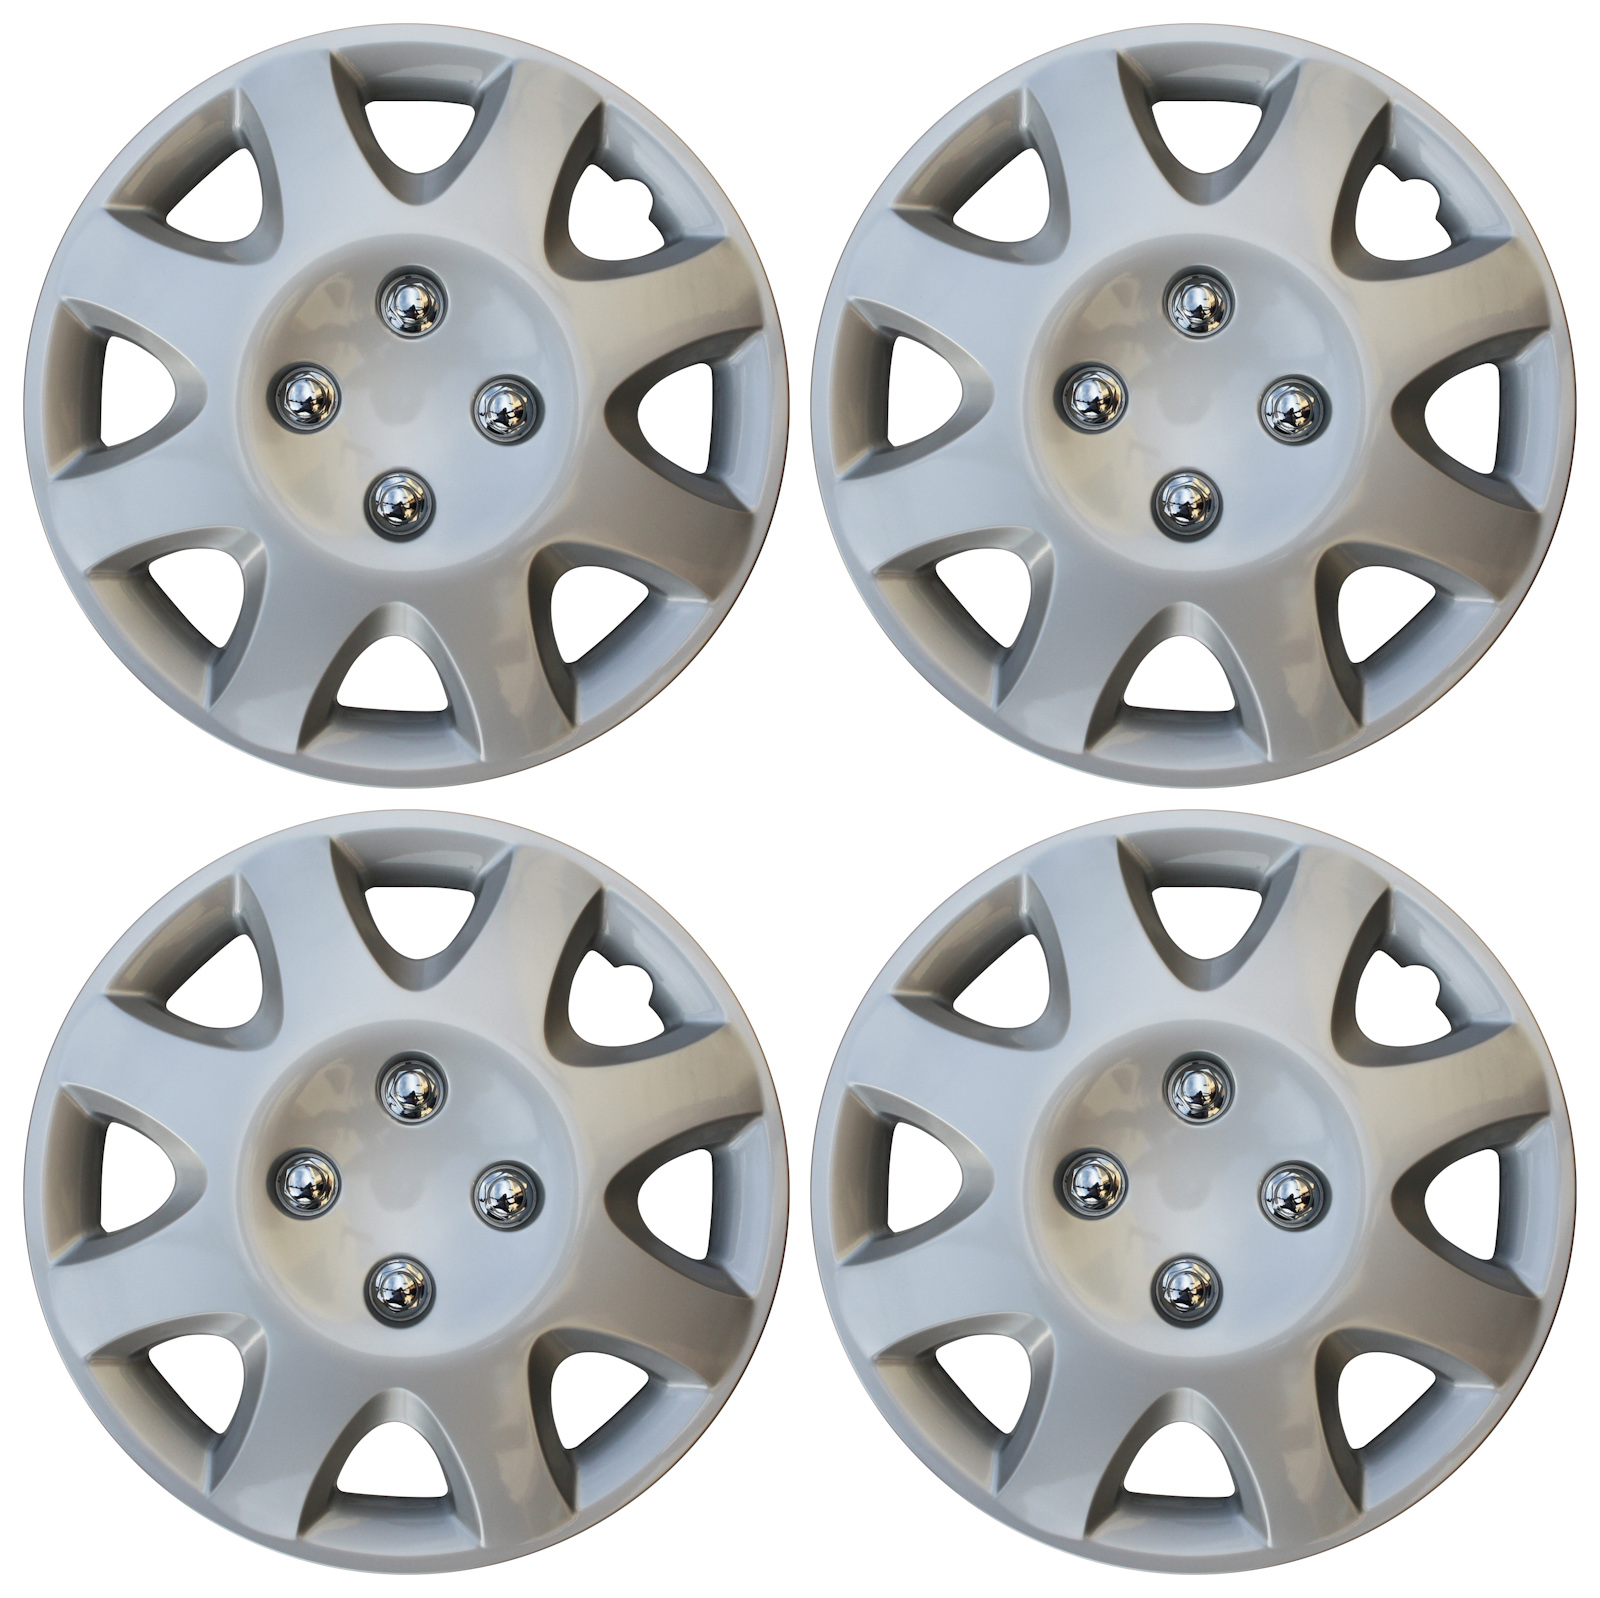 Details about BRAND NEW Hub Caps 4 PC Set ABS Silver 13